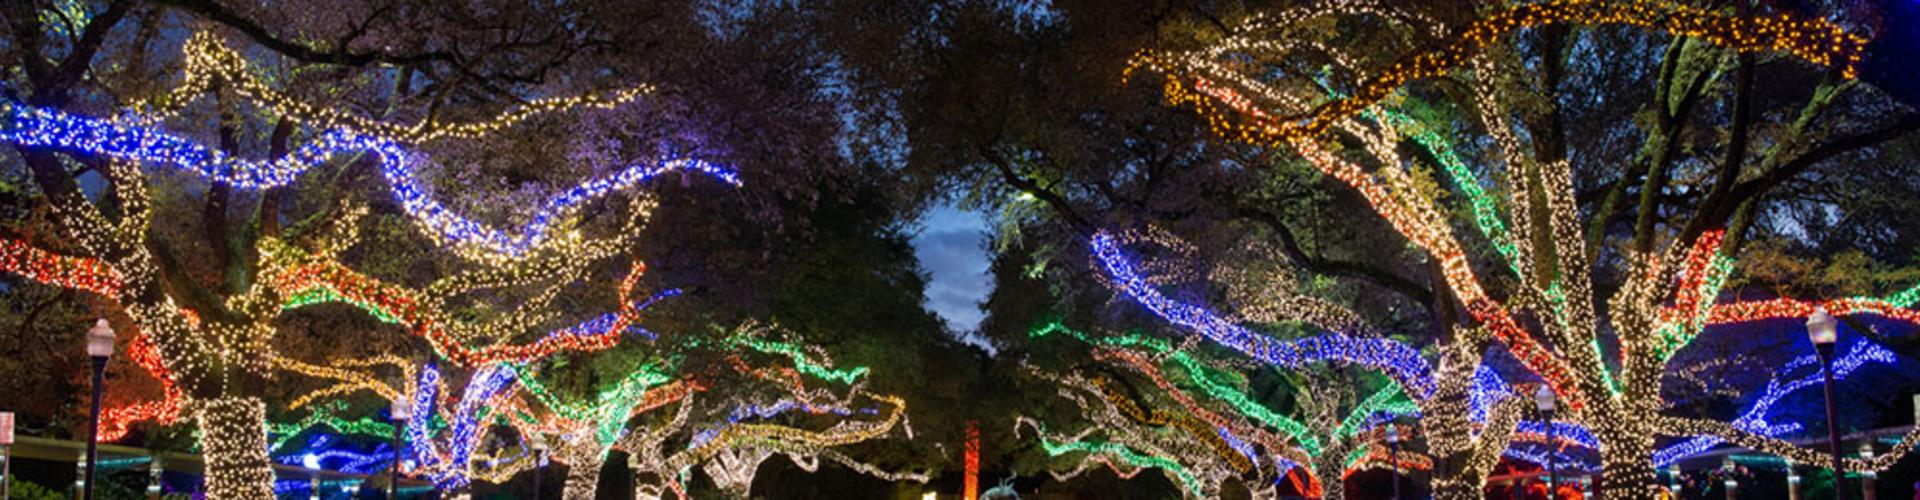 7 'Must See' Holiday Events